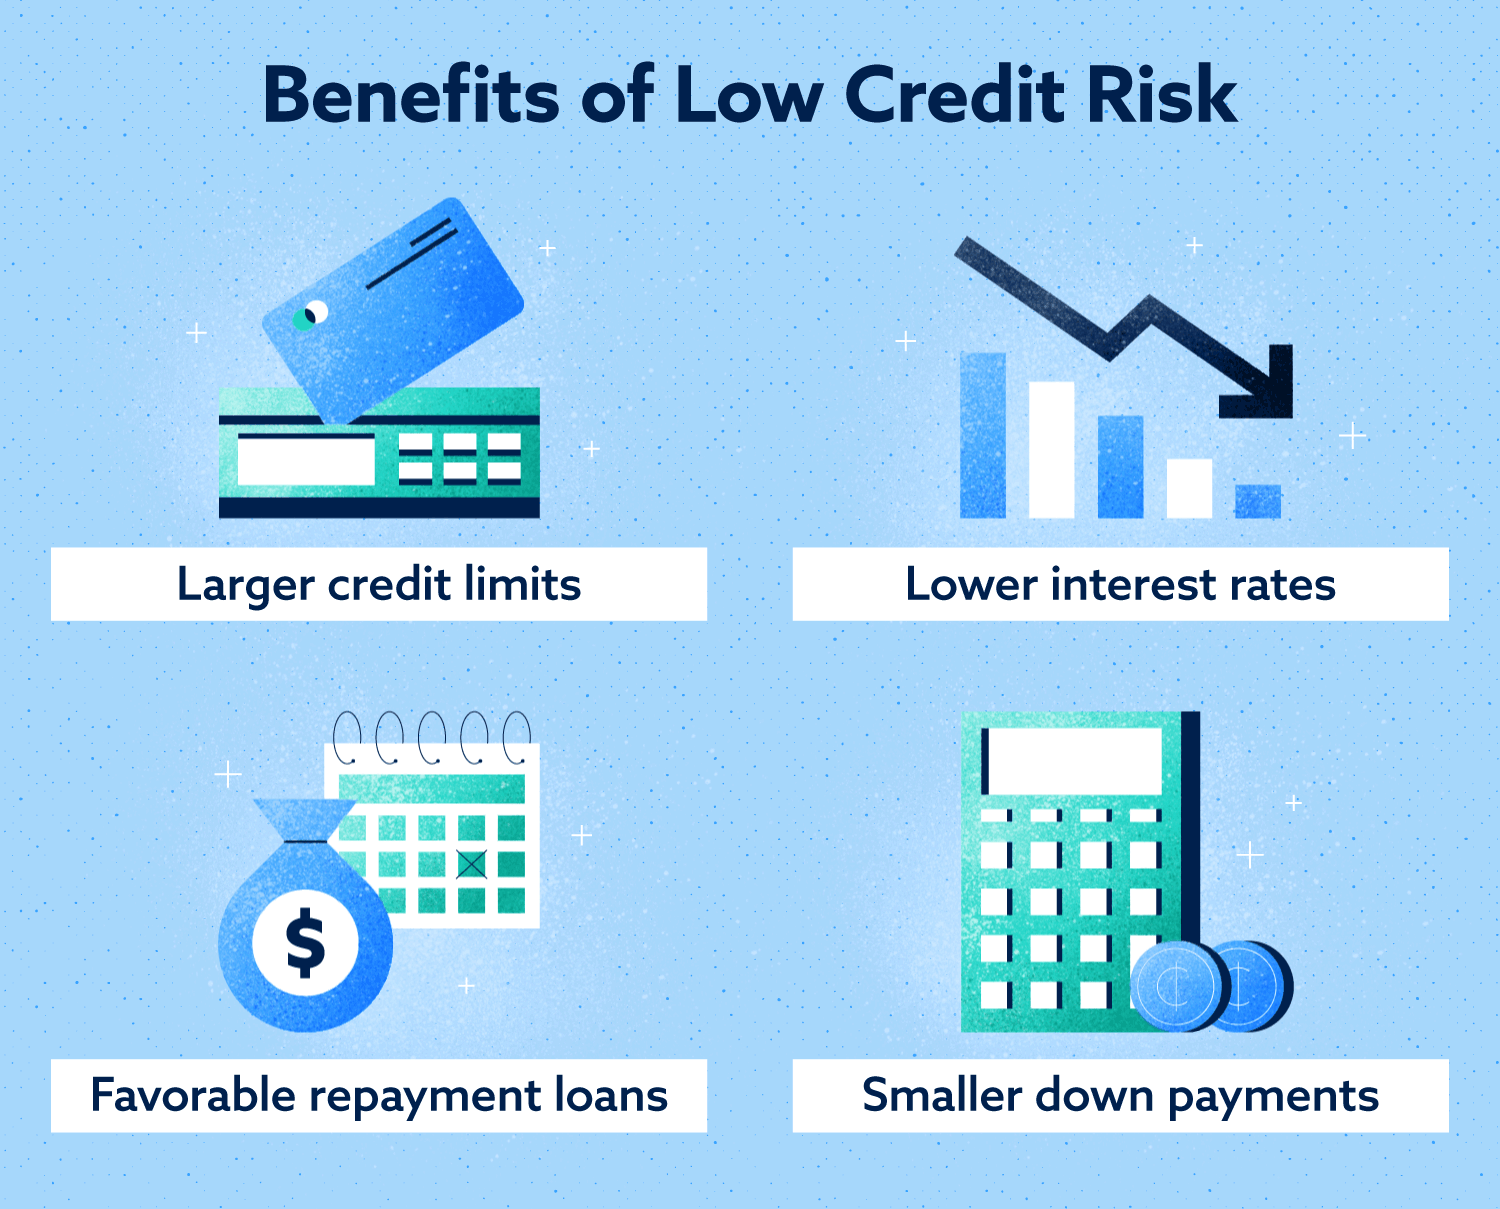 Benefits of Low Credit Risk image